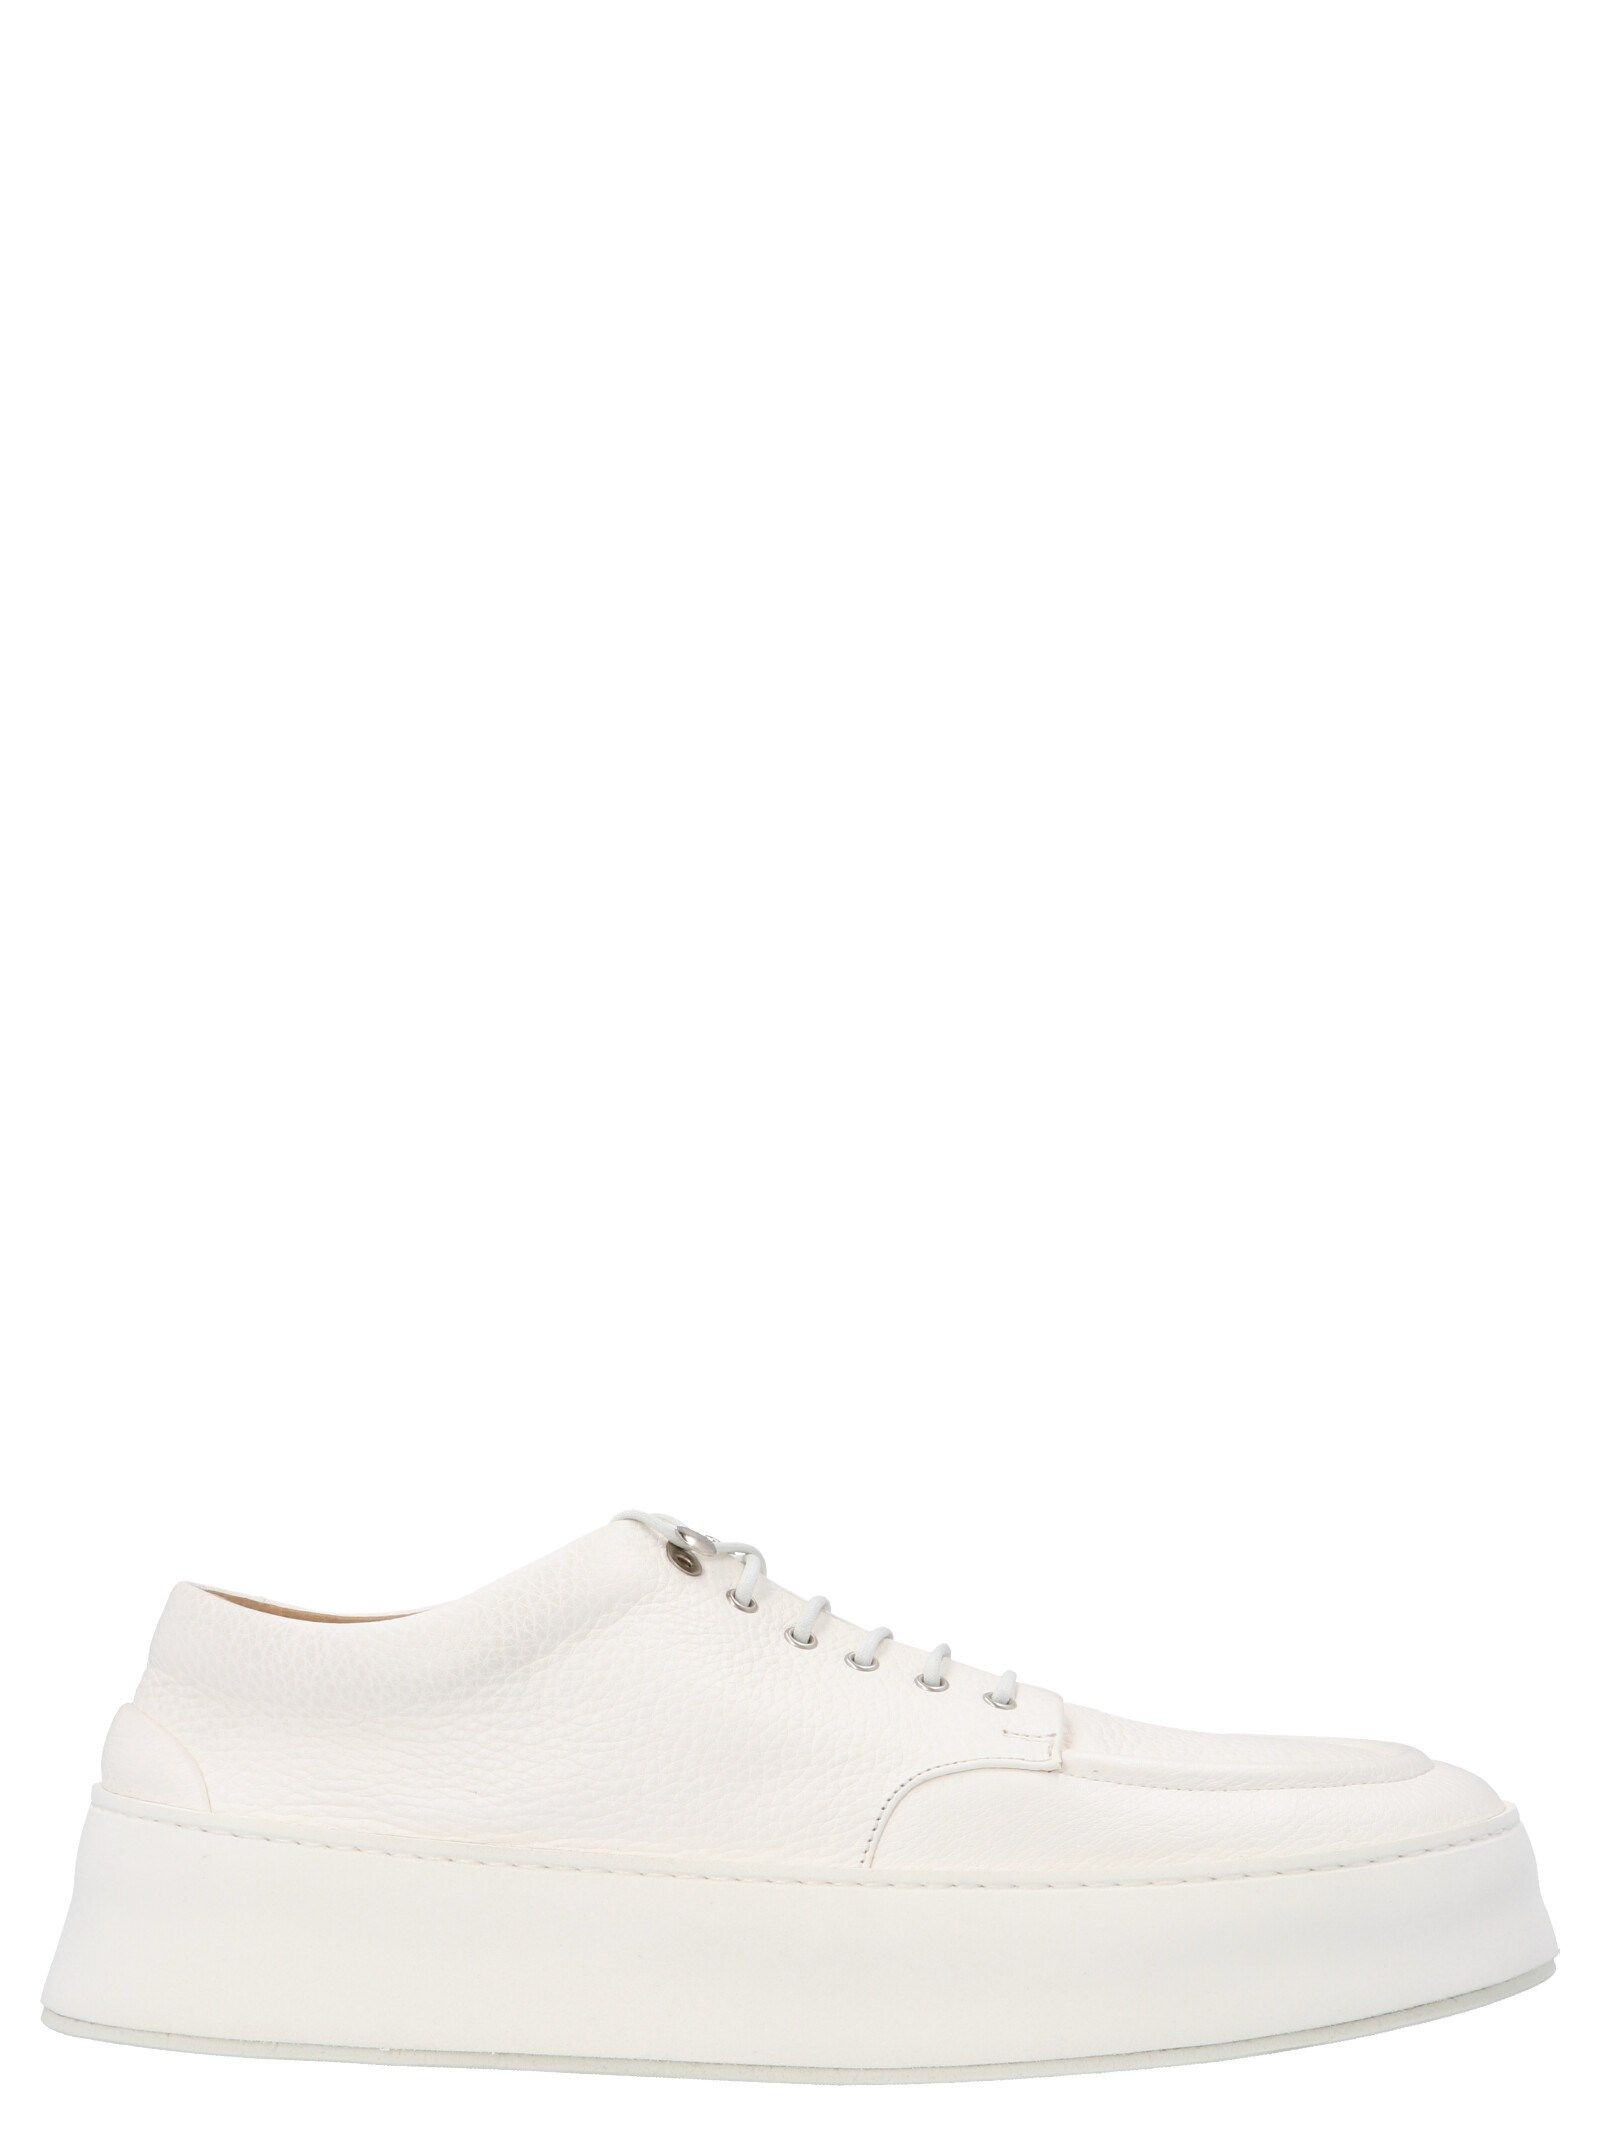 Marsèll Low tops MARSELL MEN'S MM4130188110 WHITE LEATHER SNEAKERS